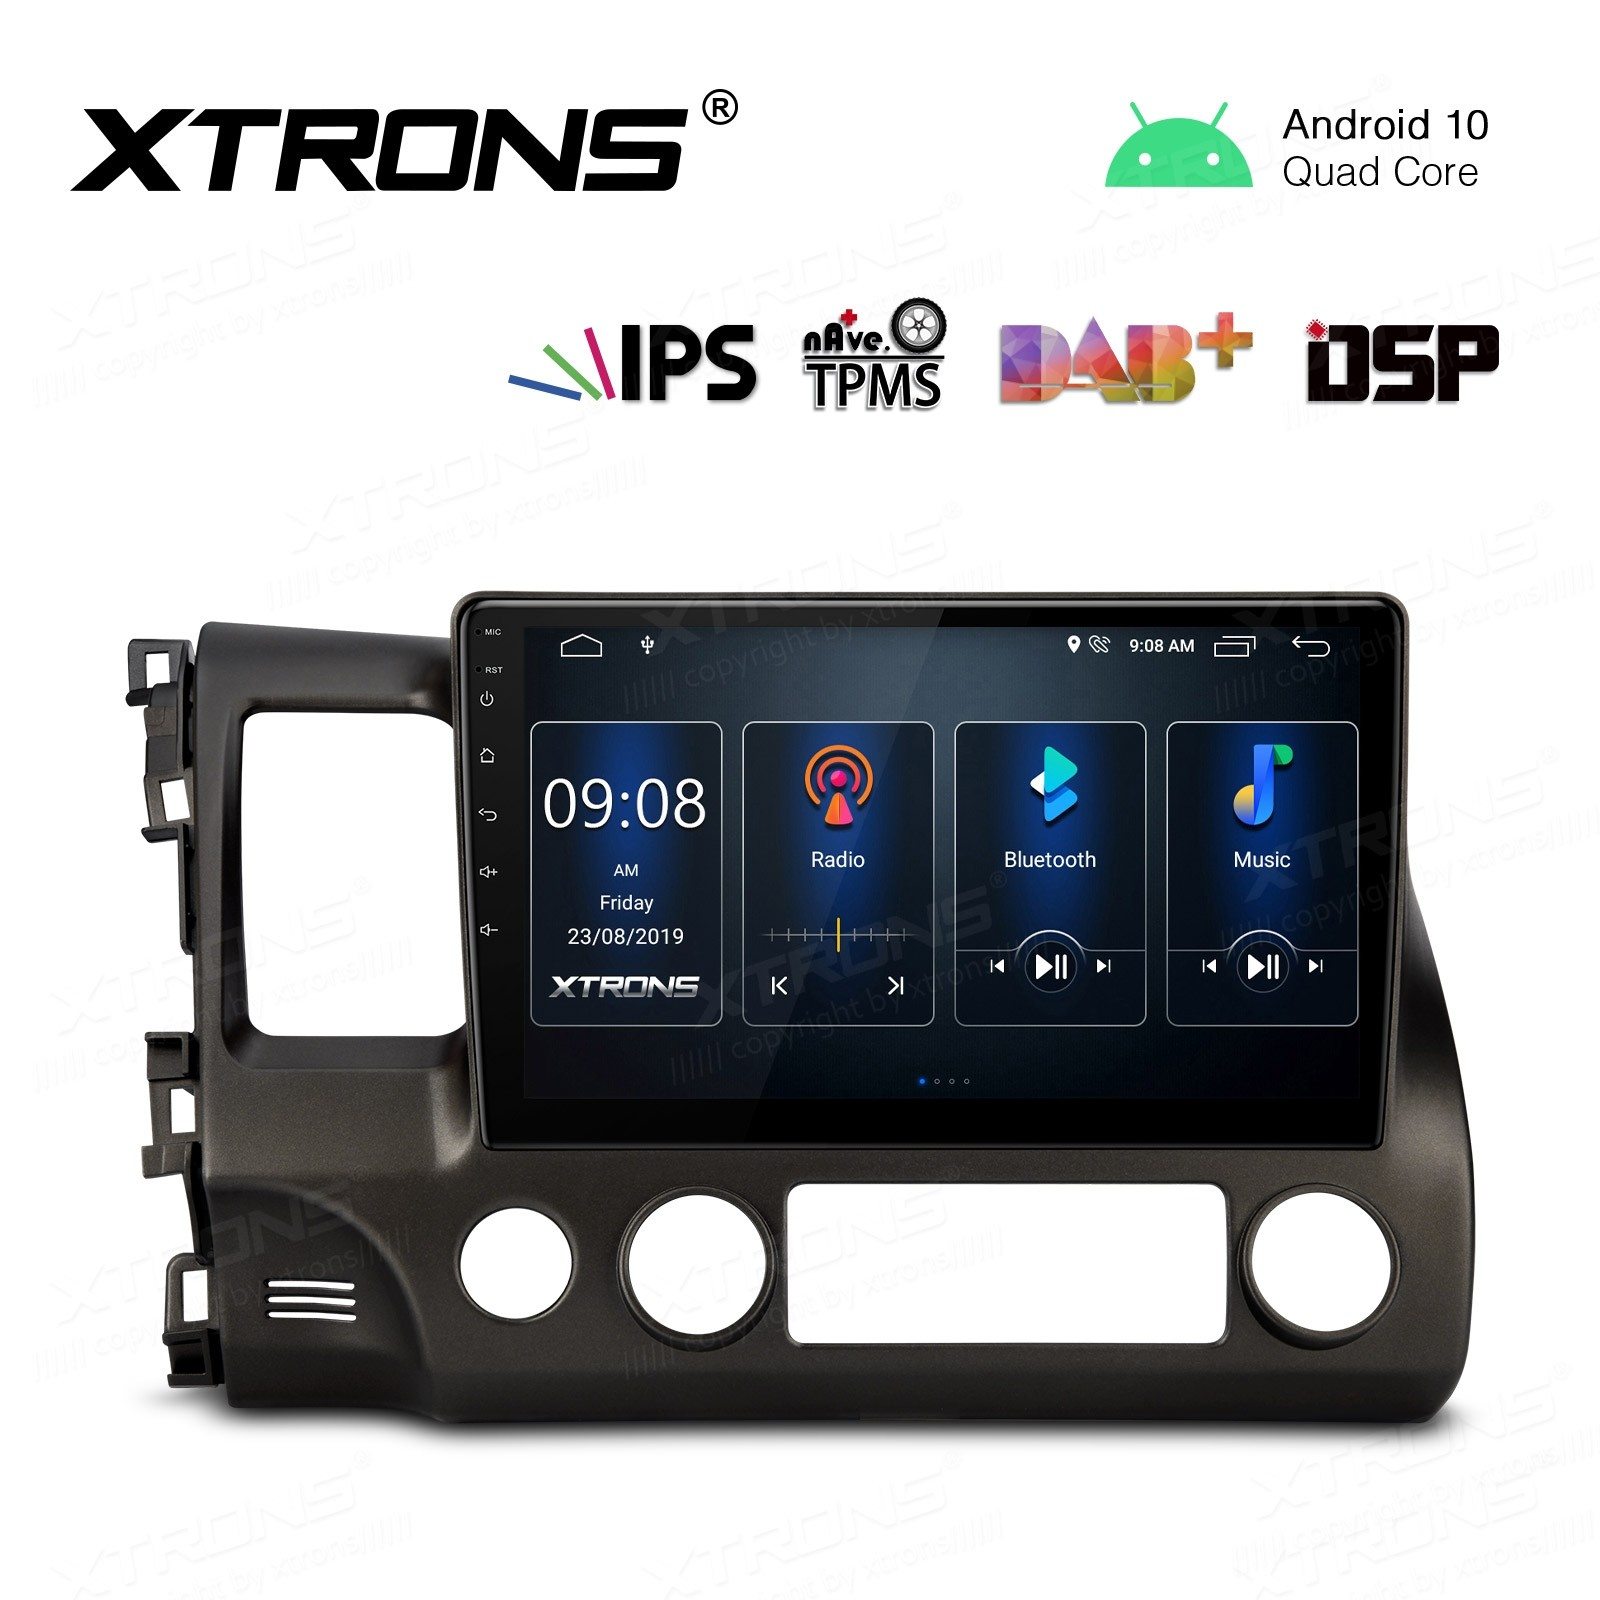 10.1 inch IPS Screen Navigation Multimedia Player with Built-in DSP Fit for HONDA(Fit Left Hand Drive Vehicles ONLY)